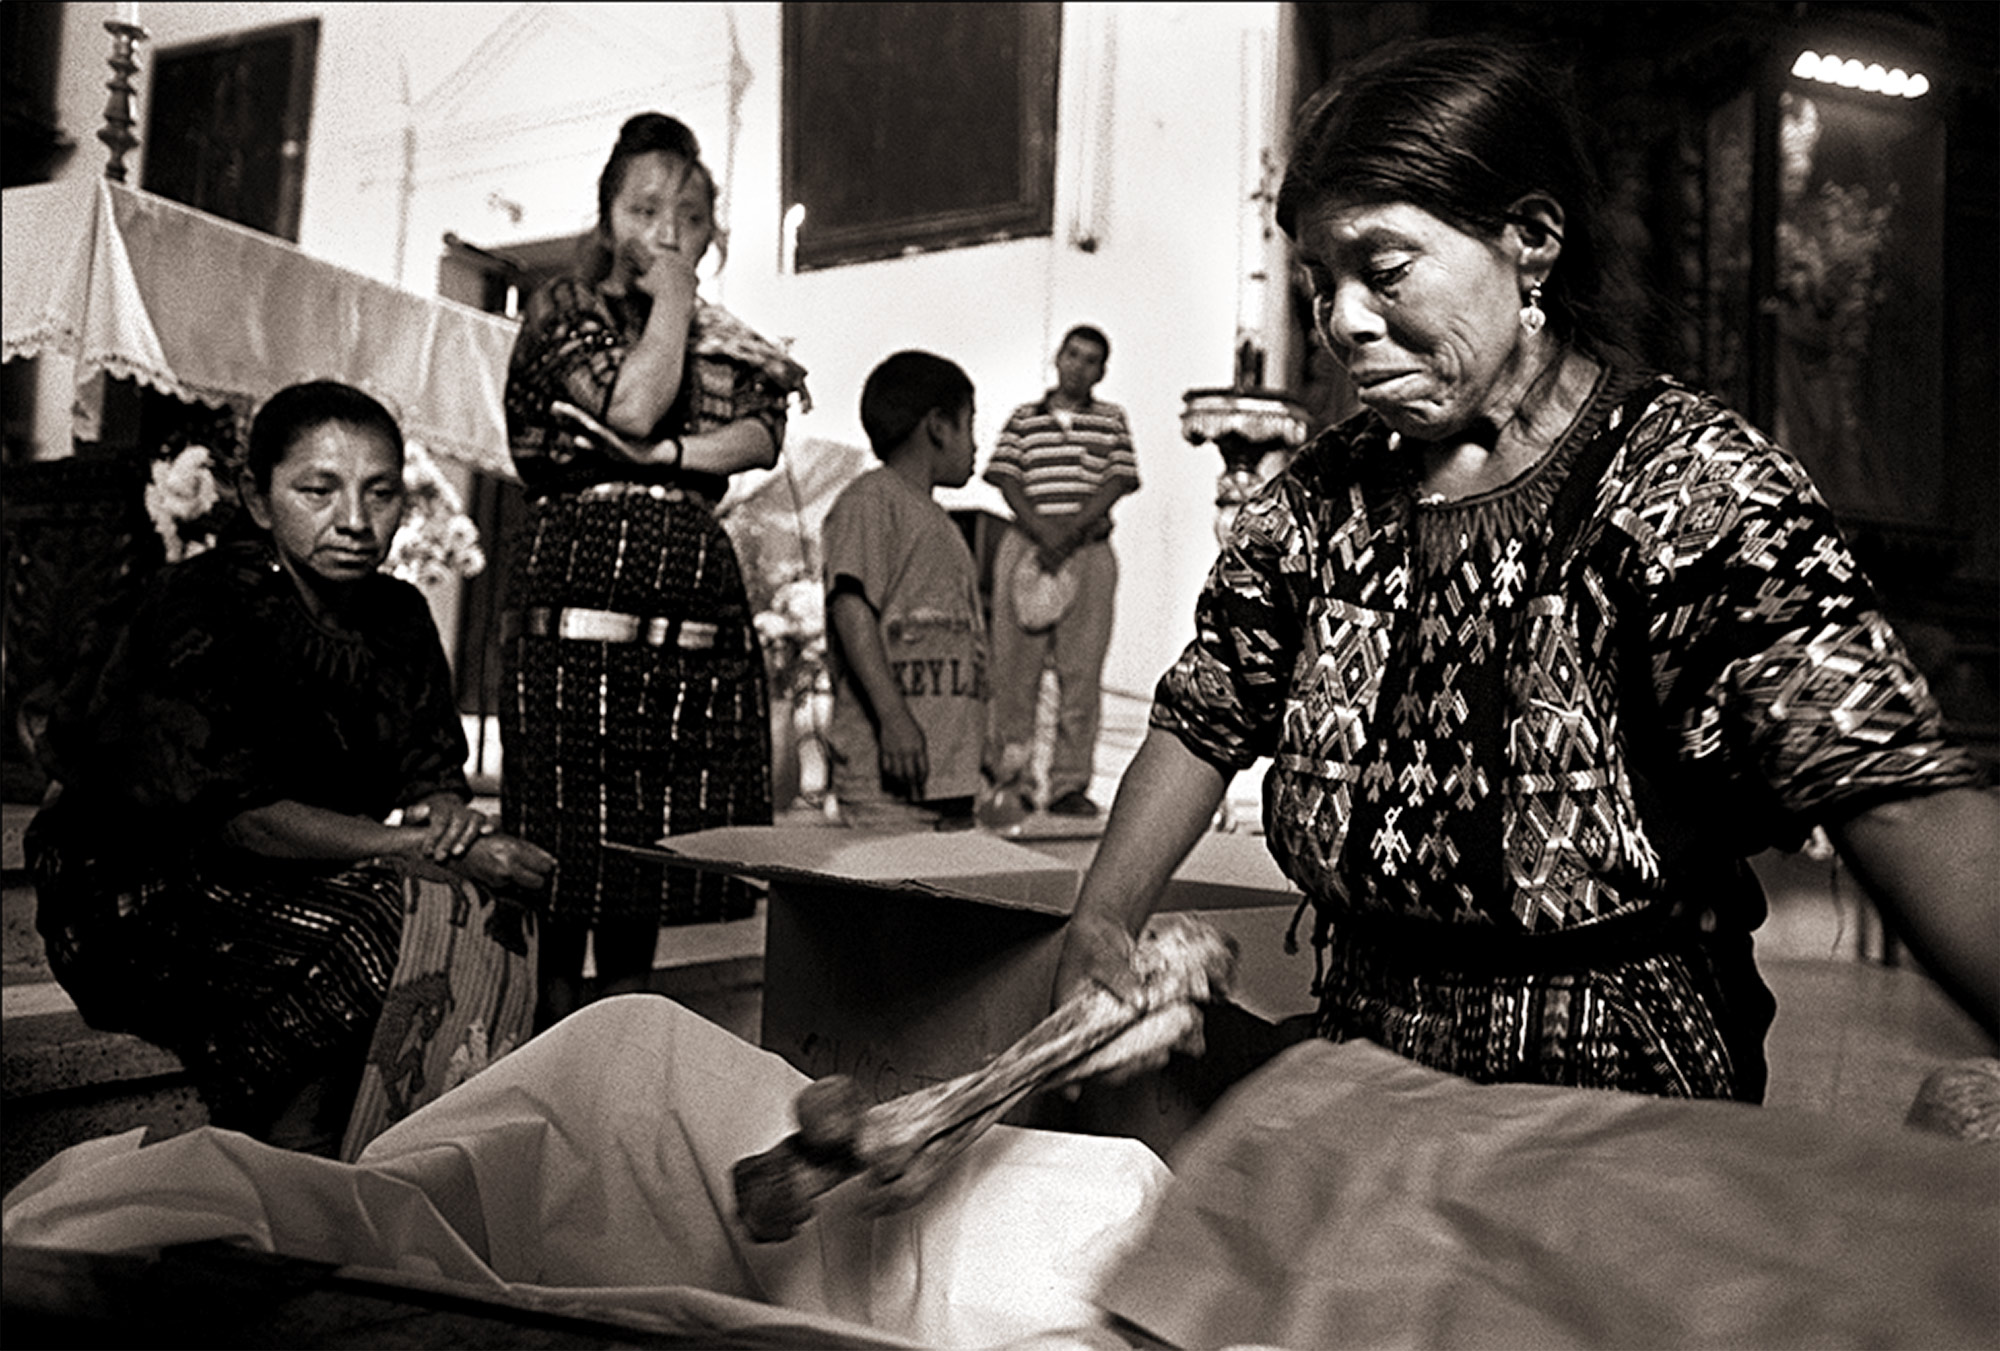 A small coffin becomes the final resting place of Tomas Tian Mejia, murdered in 1982 by the Guatemalan army. His widow, Isabella Mejia, placed the bones of her late husband into the coffin after they were turned over to her at the Iglesia Catolica de Chichicastenango. The bones of 23 people, including her husband's, were discovered and exhumed from a massacre site in the nearby village of Chupol.